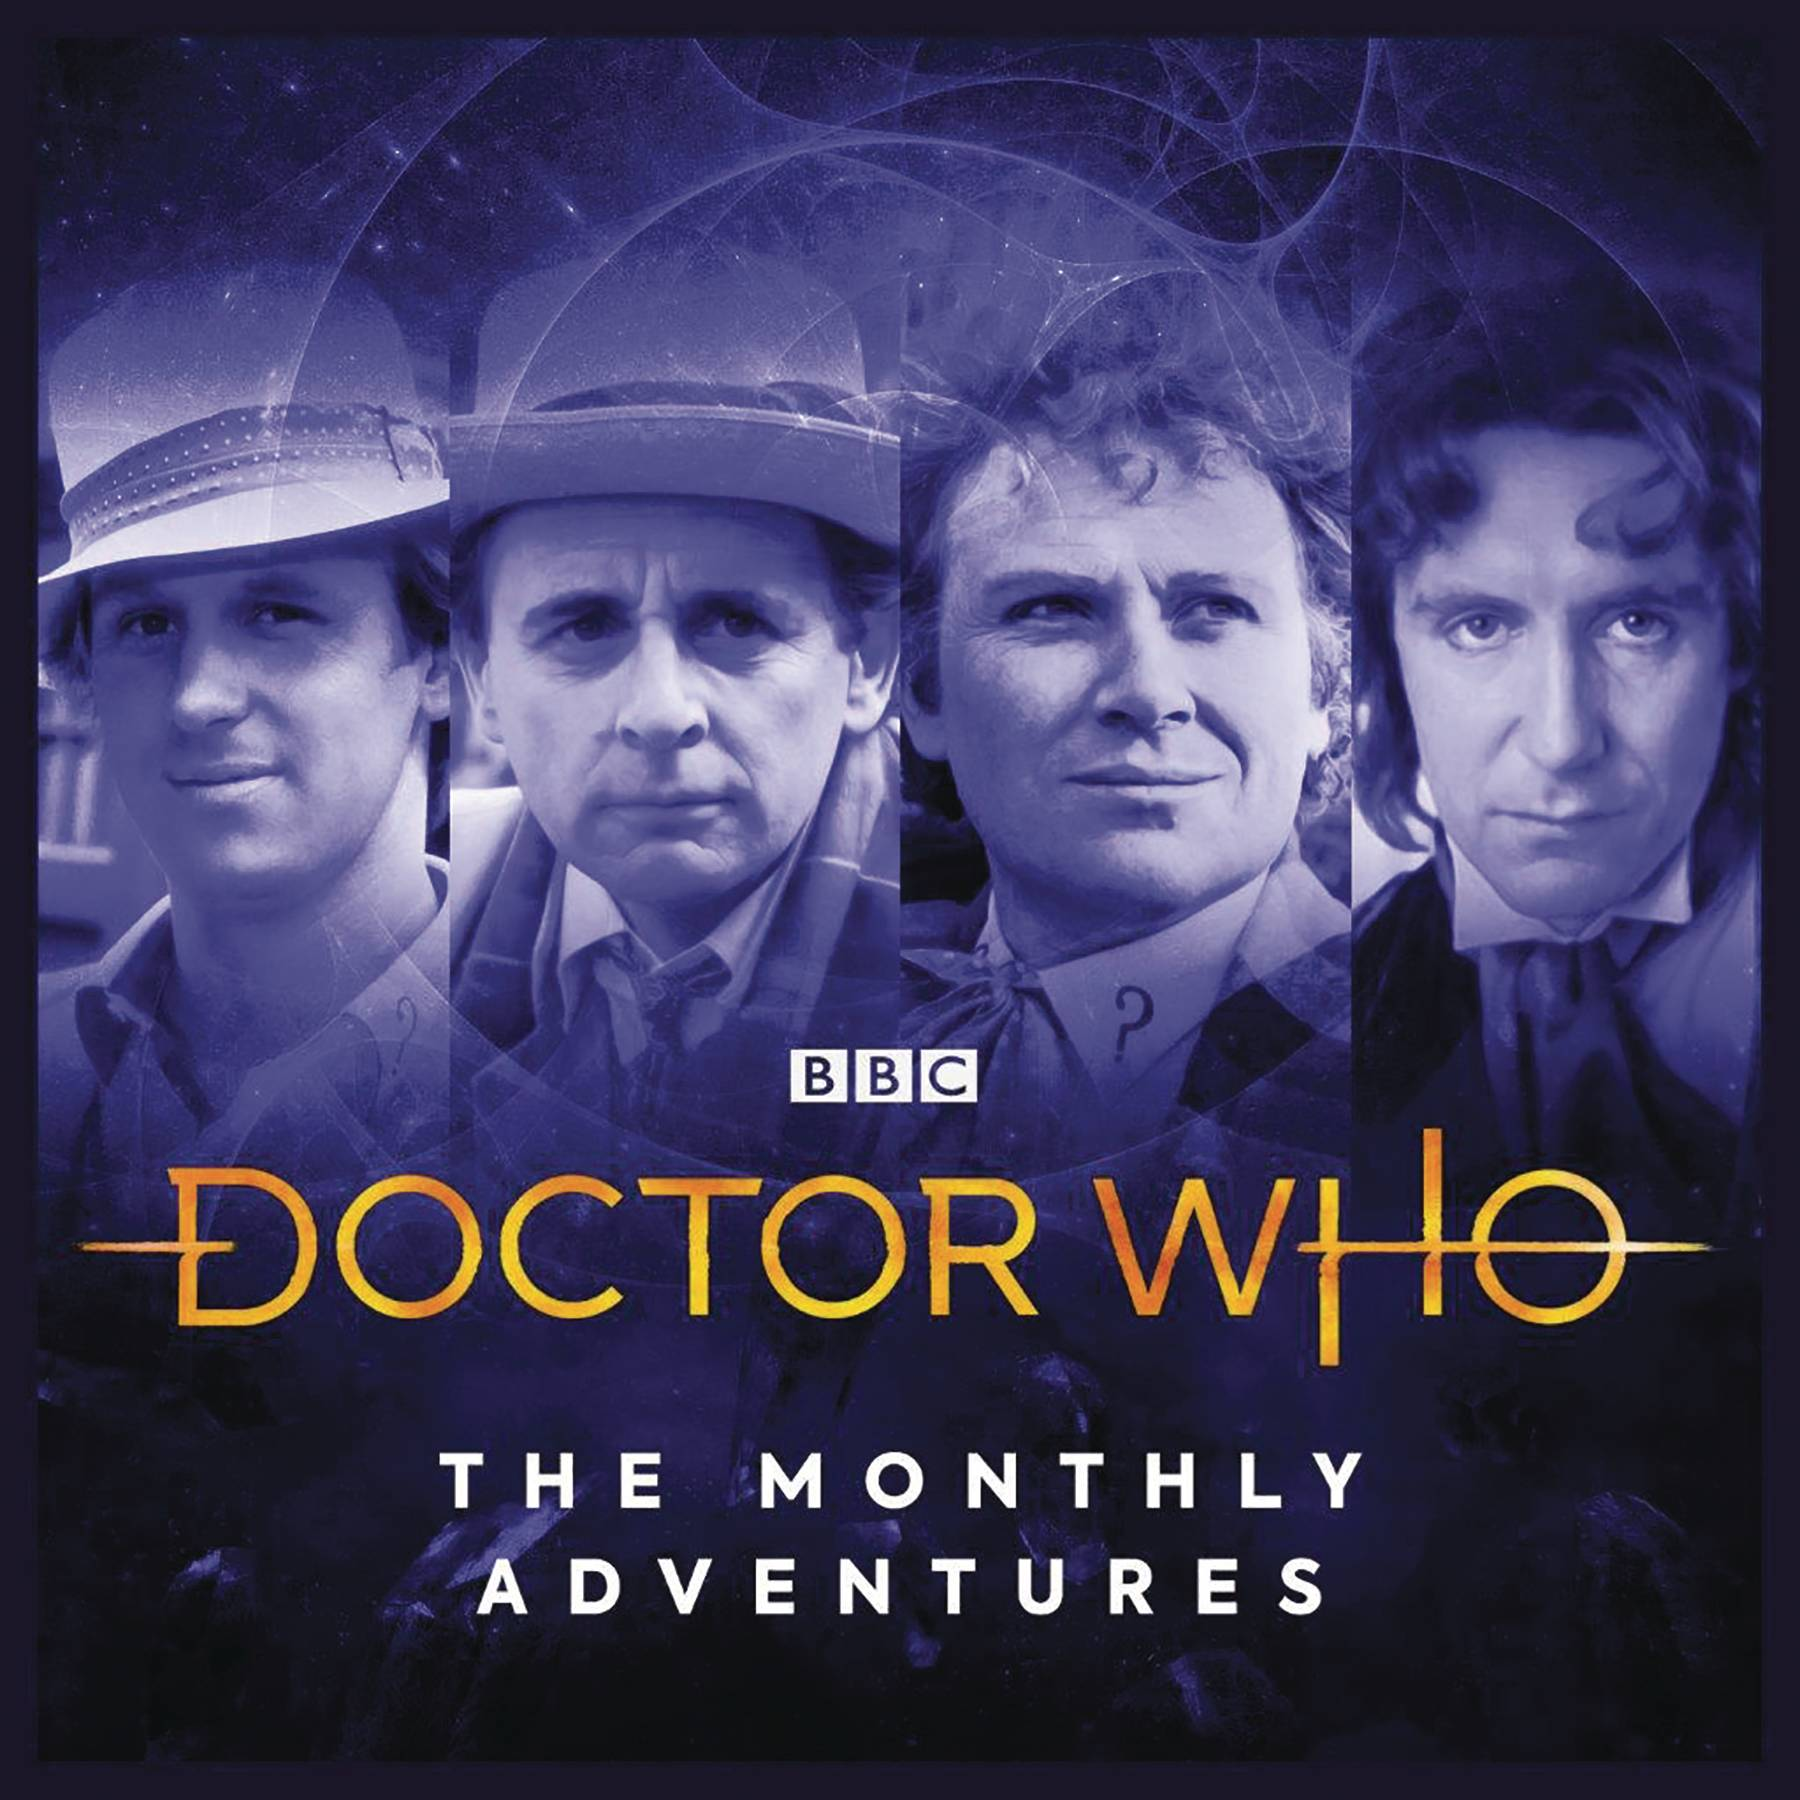 DOCTOR WHO 6TH DOCTOR EMISSARY OF DALEKS AUDIO CD